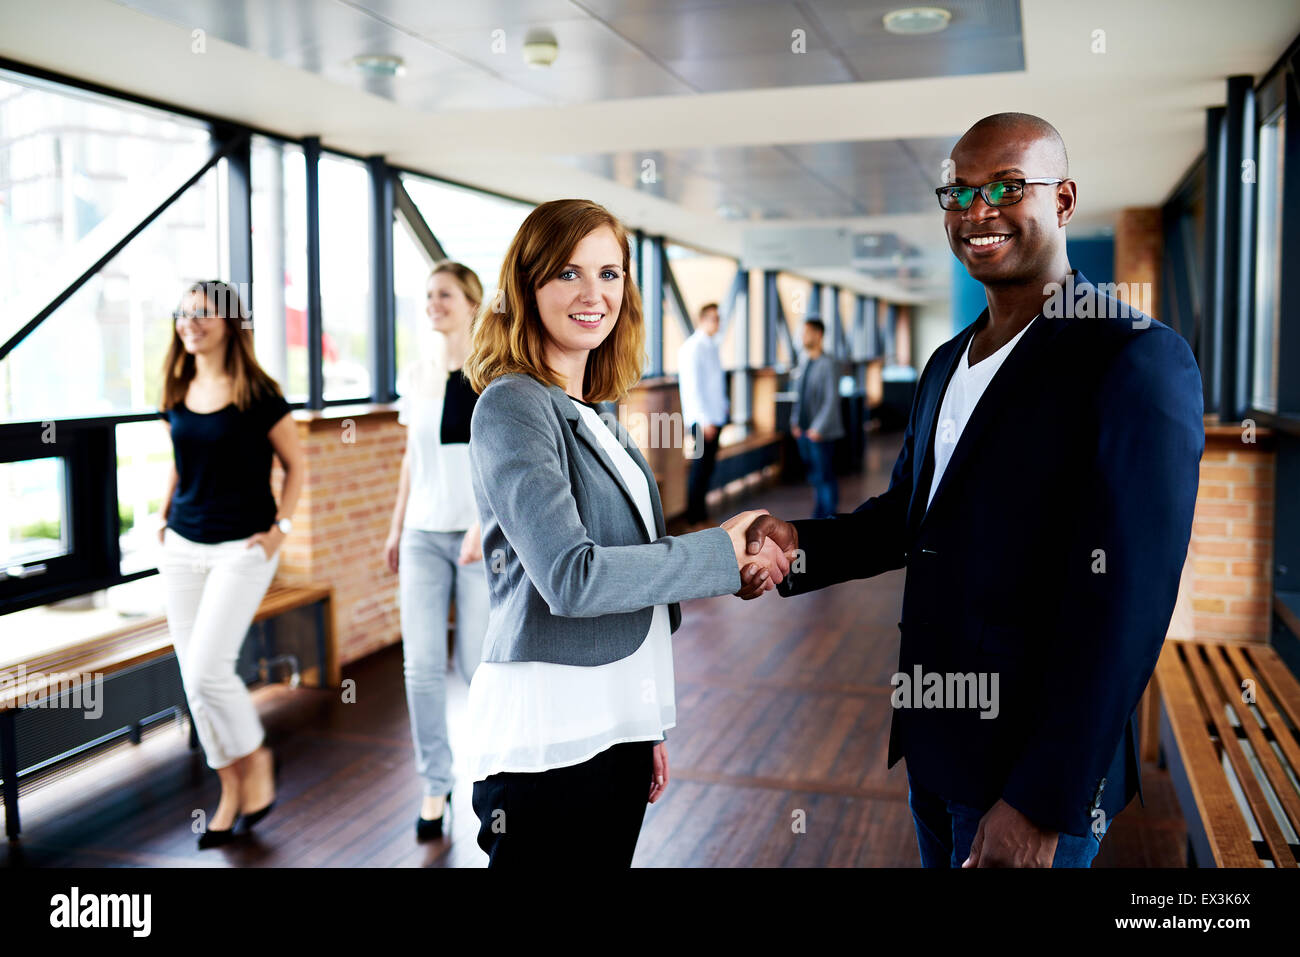 White female executive and black male executive shaking hands in hallway and smiling at camera - Stock Image